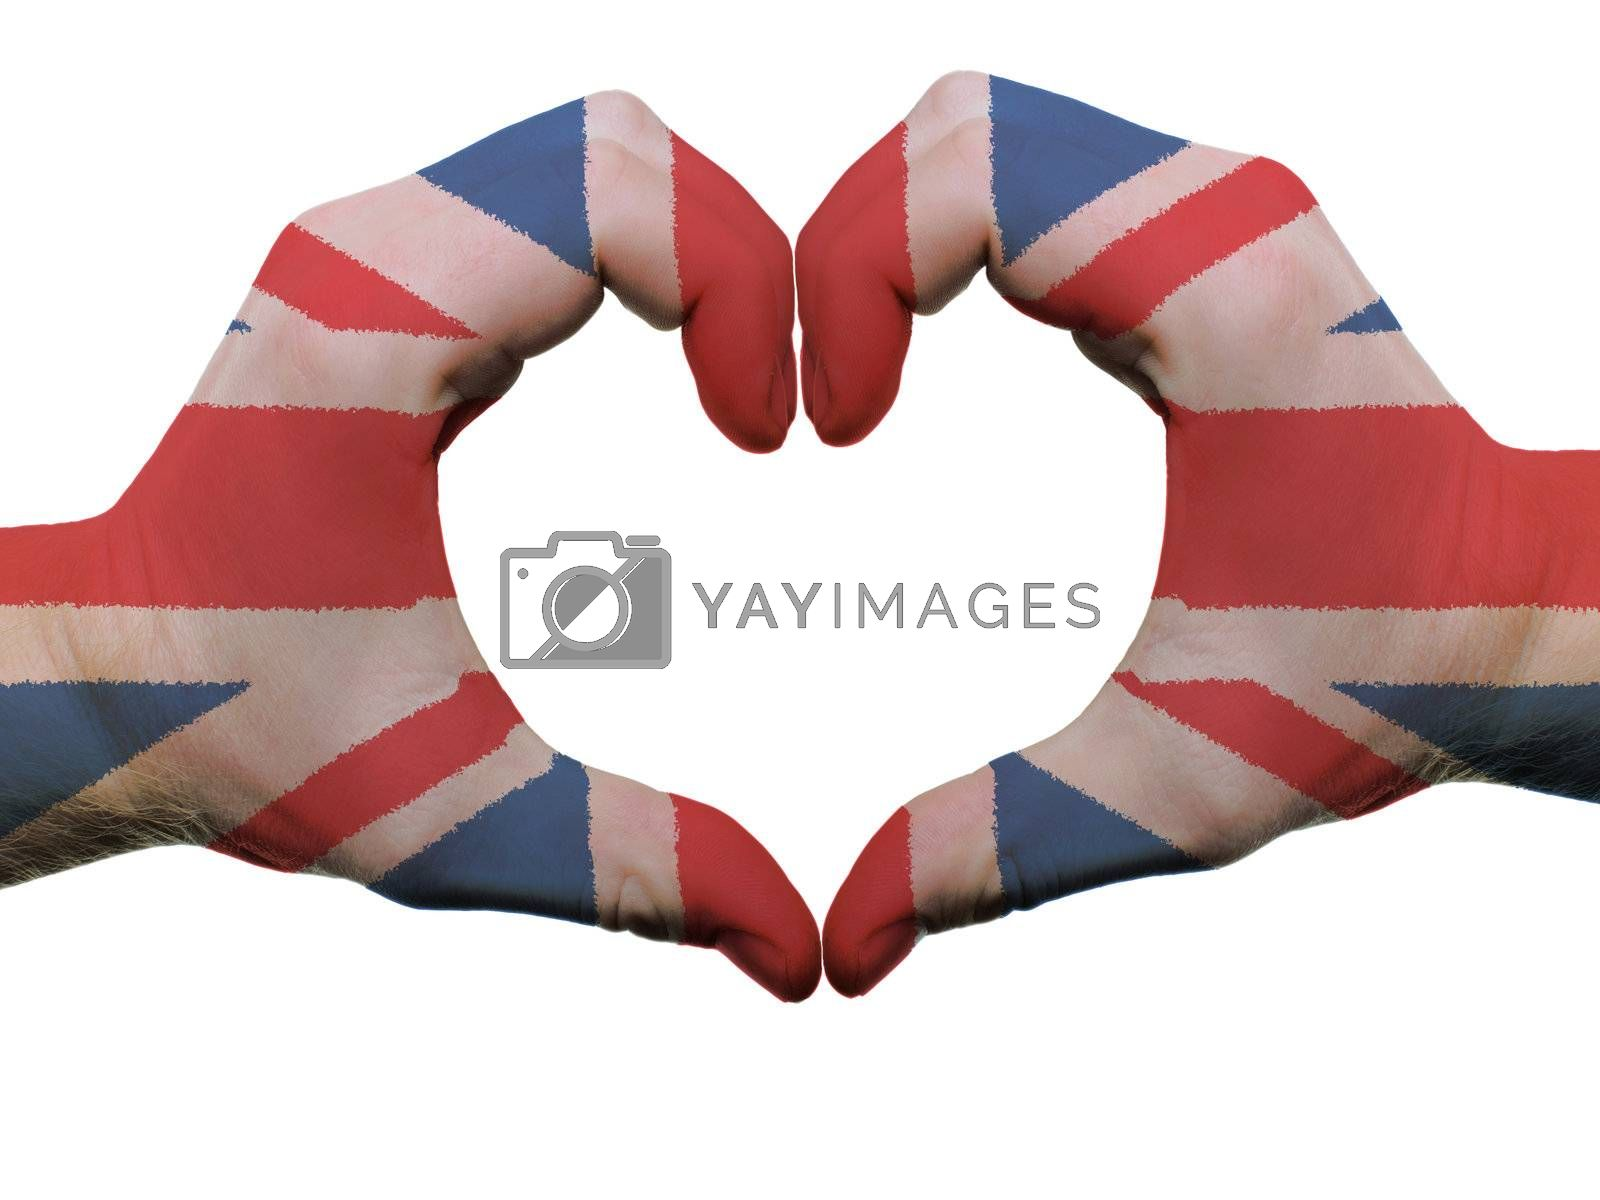 Gesture made by united kingdom flag colored hands showing symbol of heart and love, isolated on white background